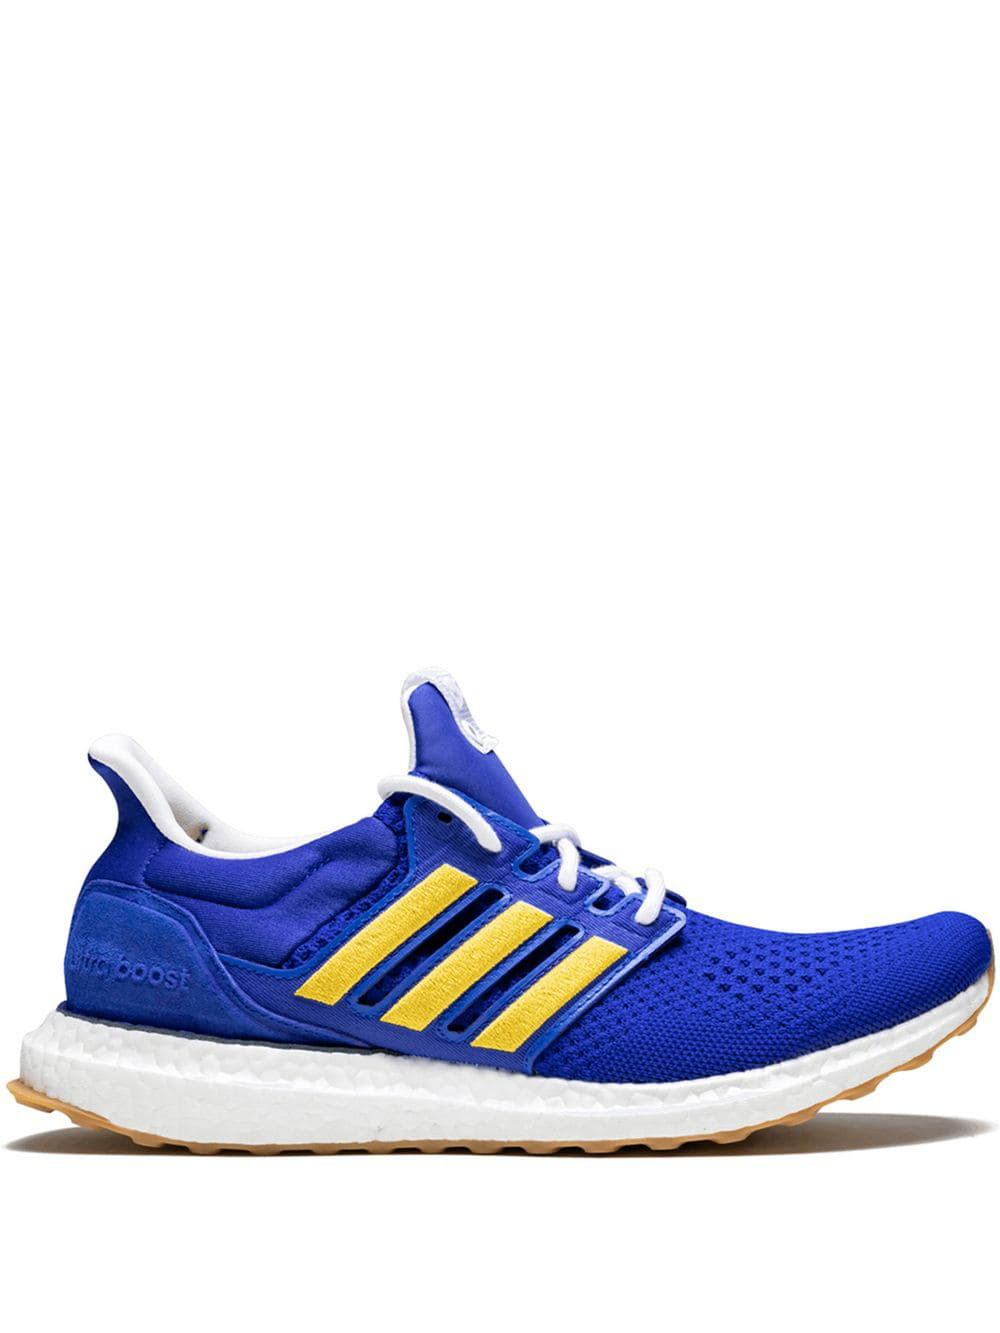 3434ff782 Adidas Originals Adidas Ultra Boost E.G - Blue